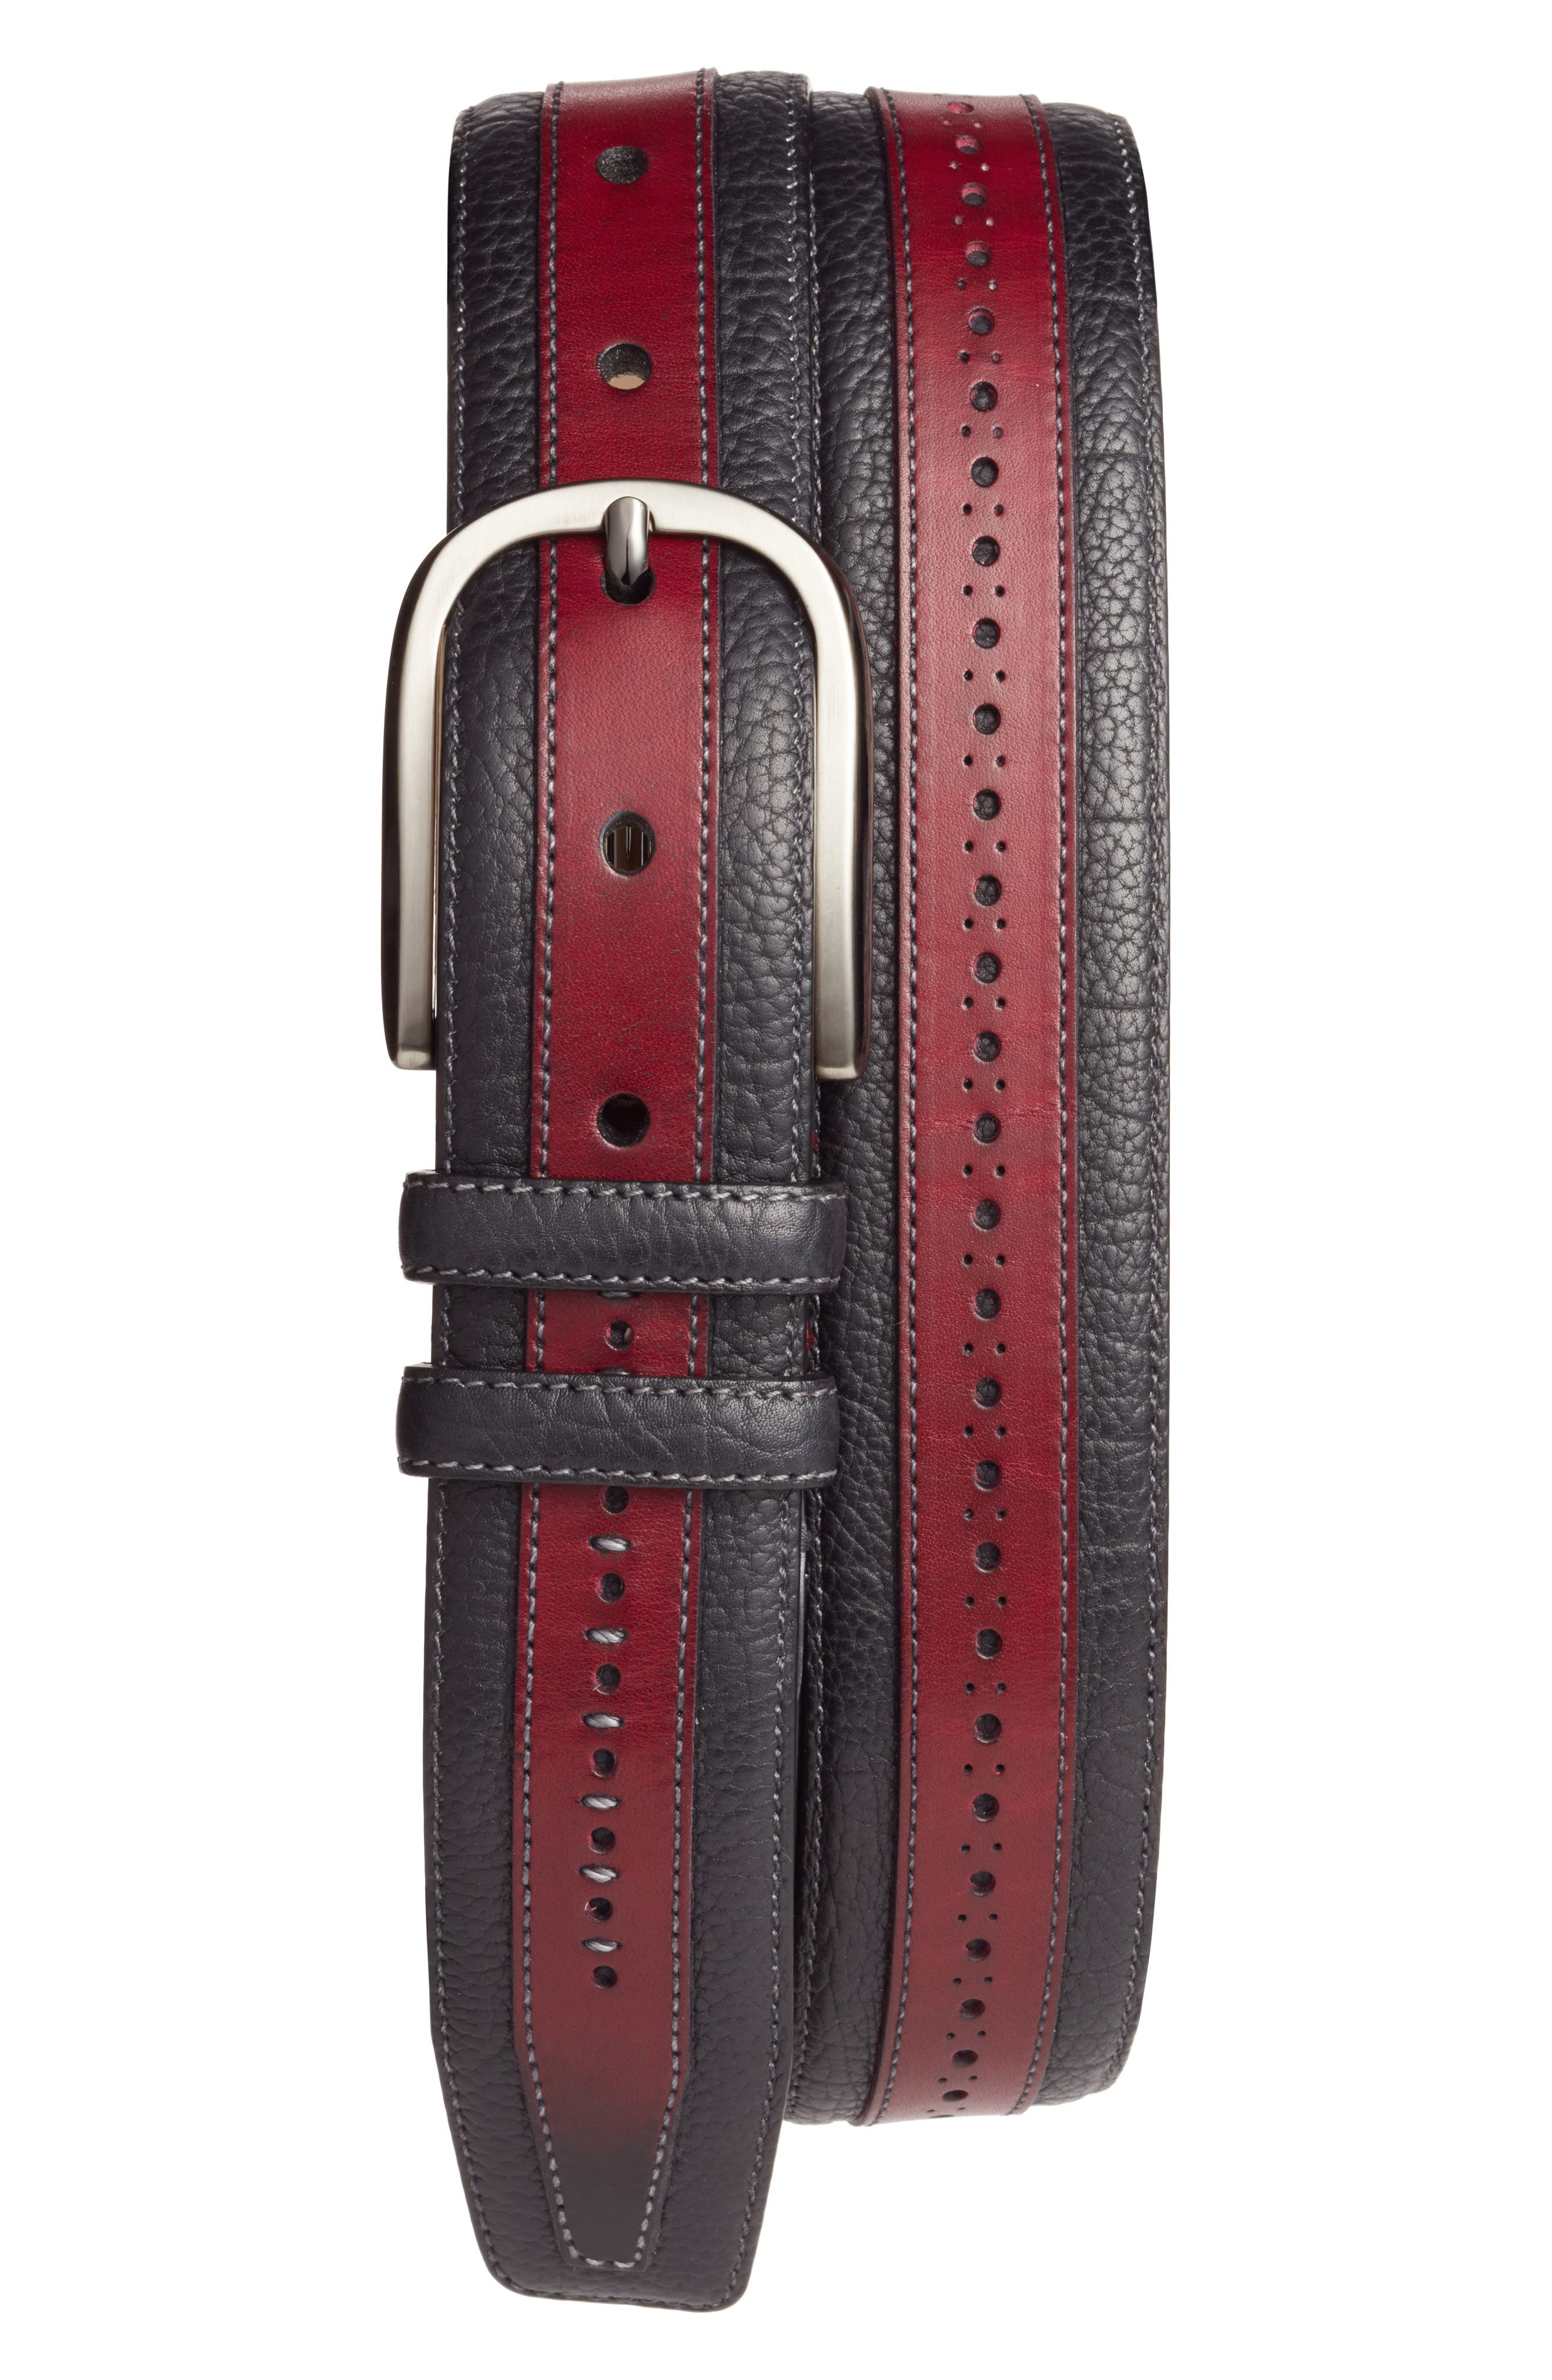 Palma Leather Belt,                         Main,                         color, BURGUNDY/ BLACK